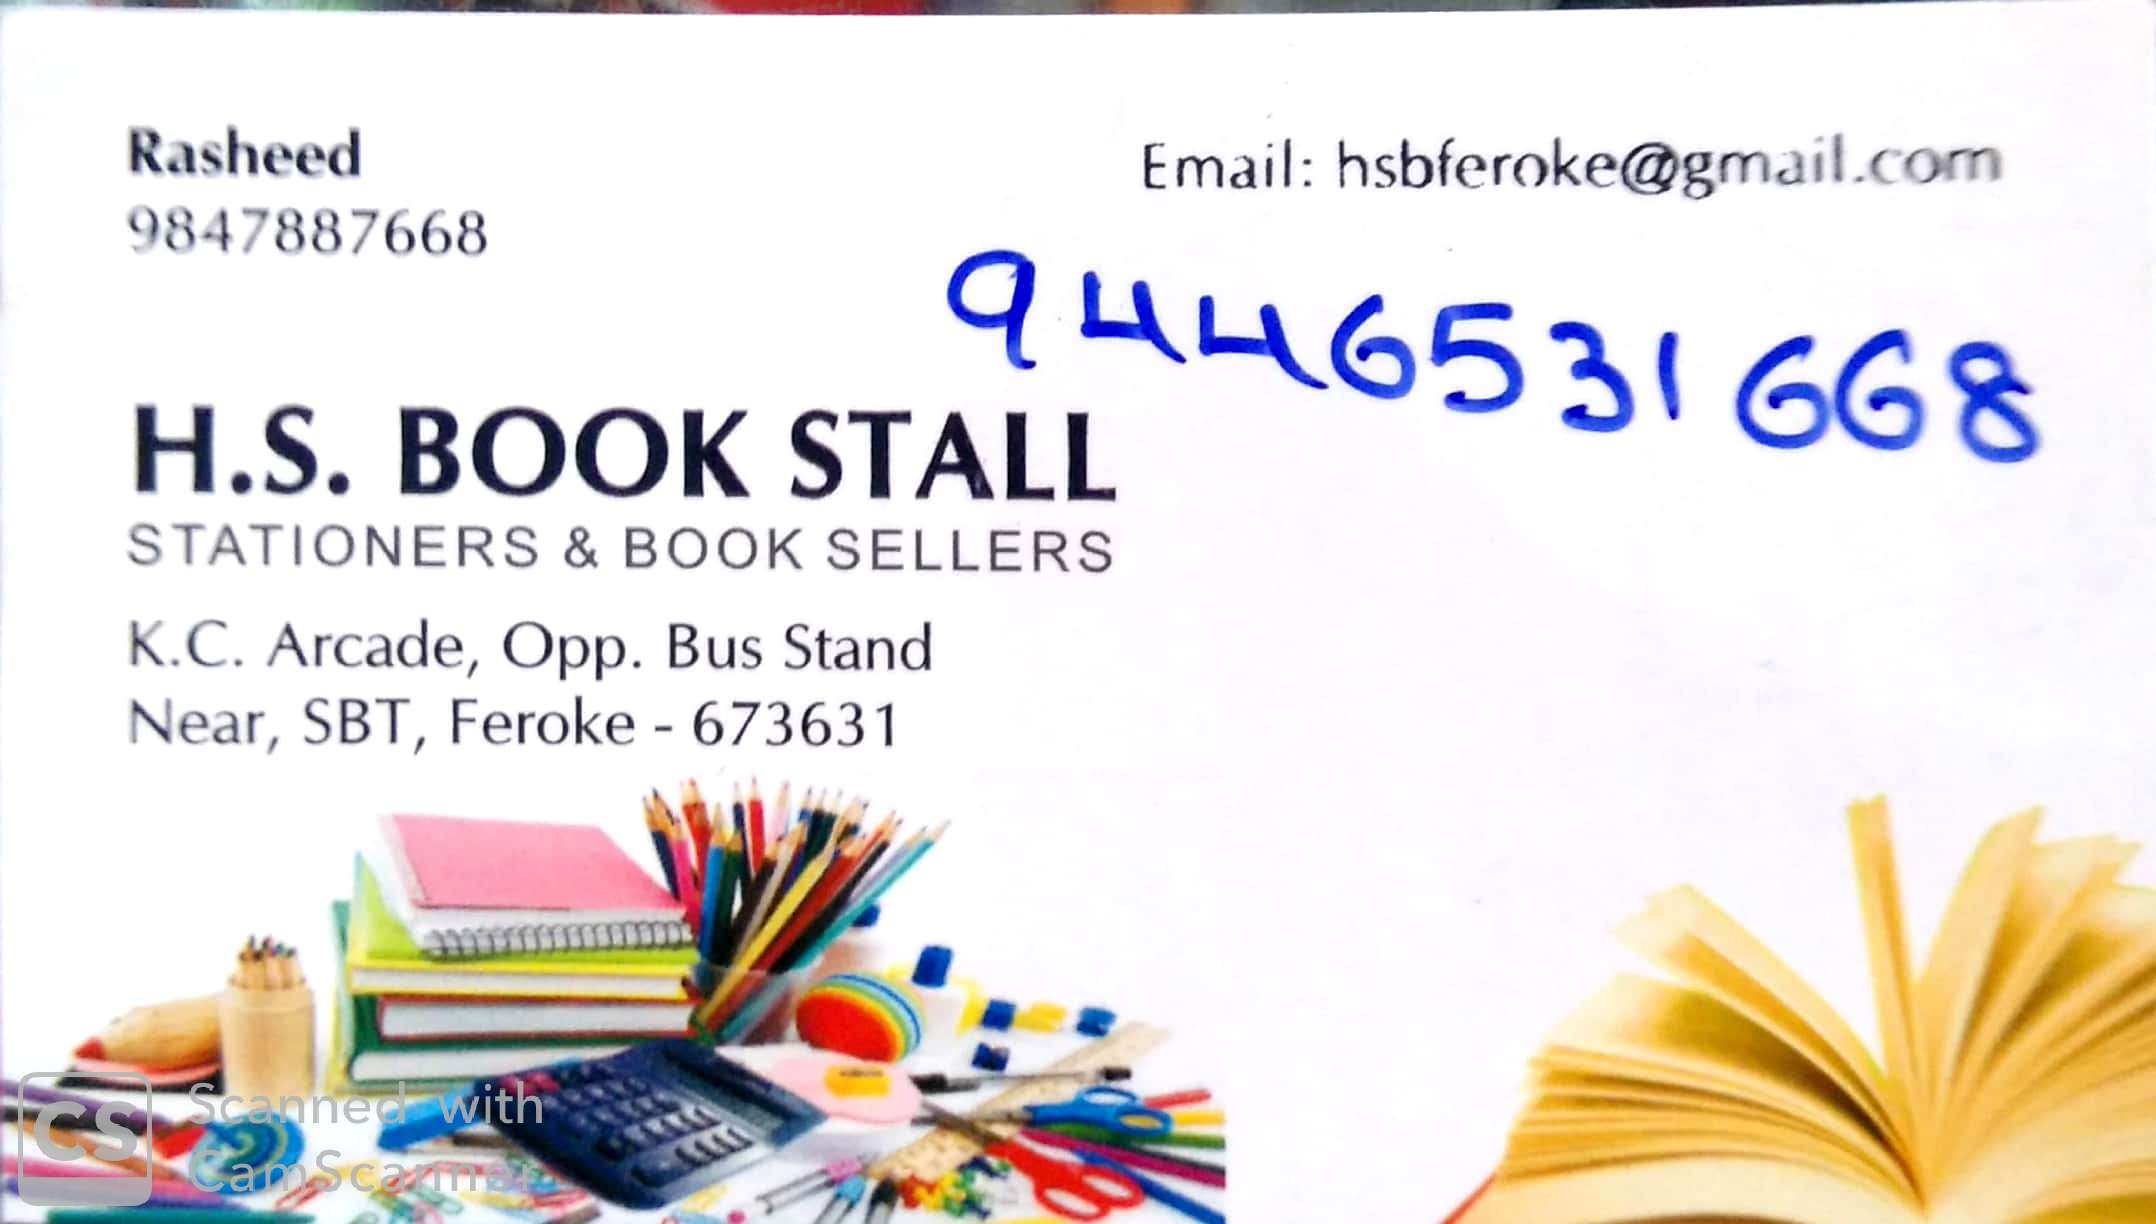 H. S. BOOK STALL, BOOK & EDU TOYS,  service in Farook, Kozhikode